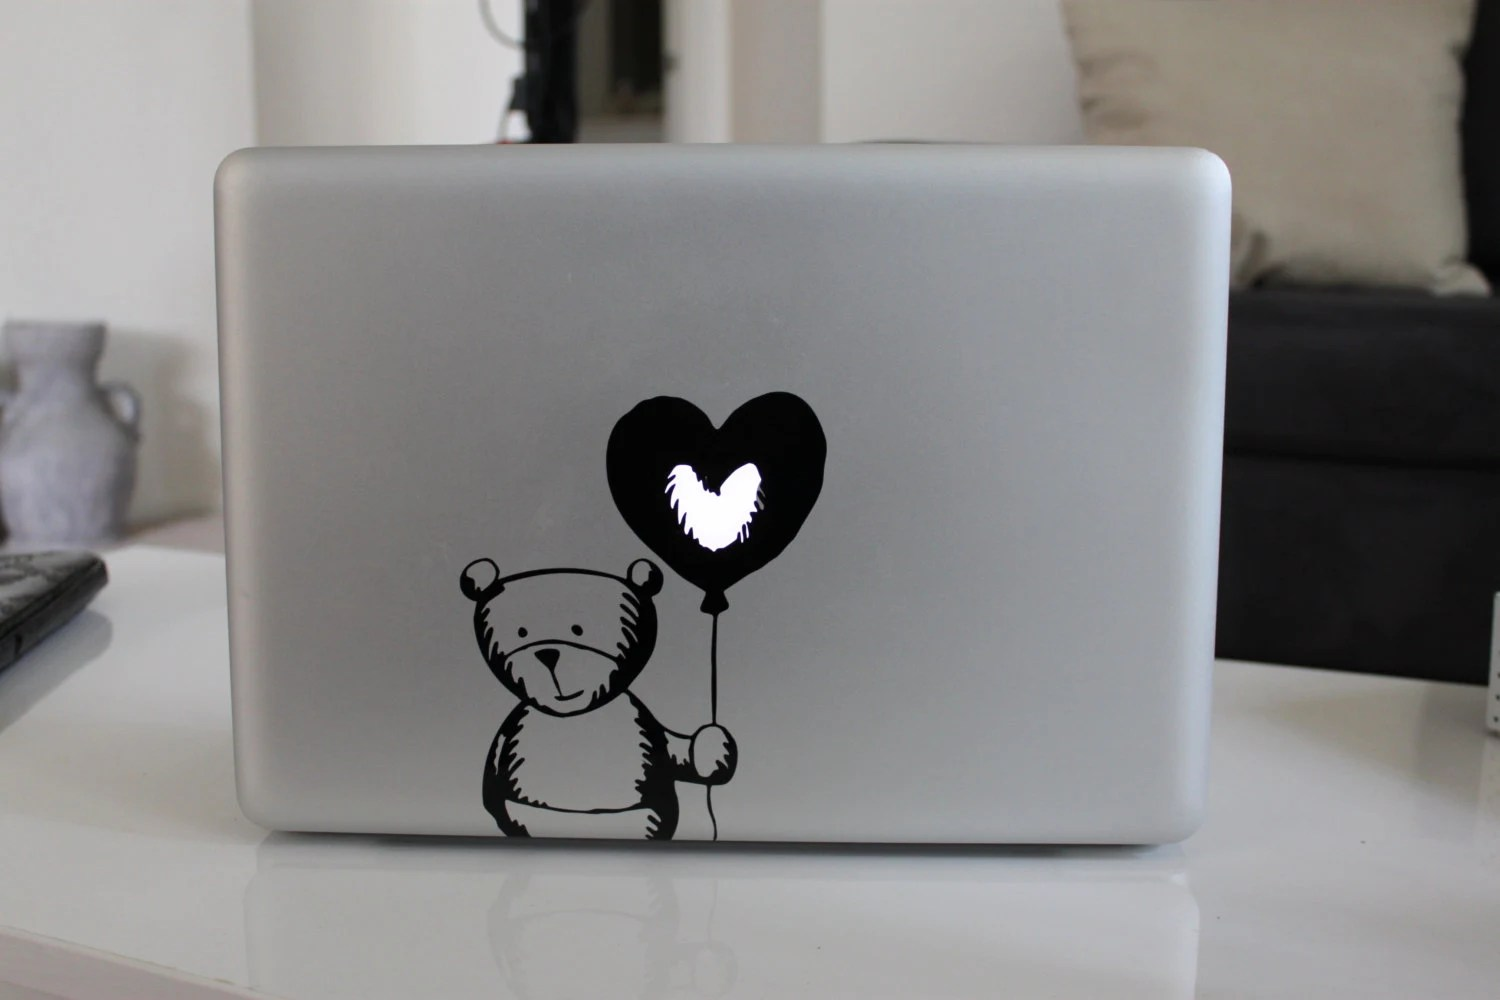 Items similar to Cute Bear Balloon Heart Decal Sticker For Apple MacBook on Etsy